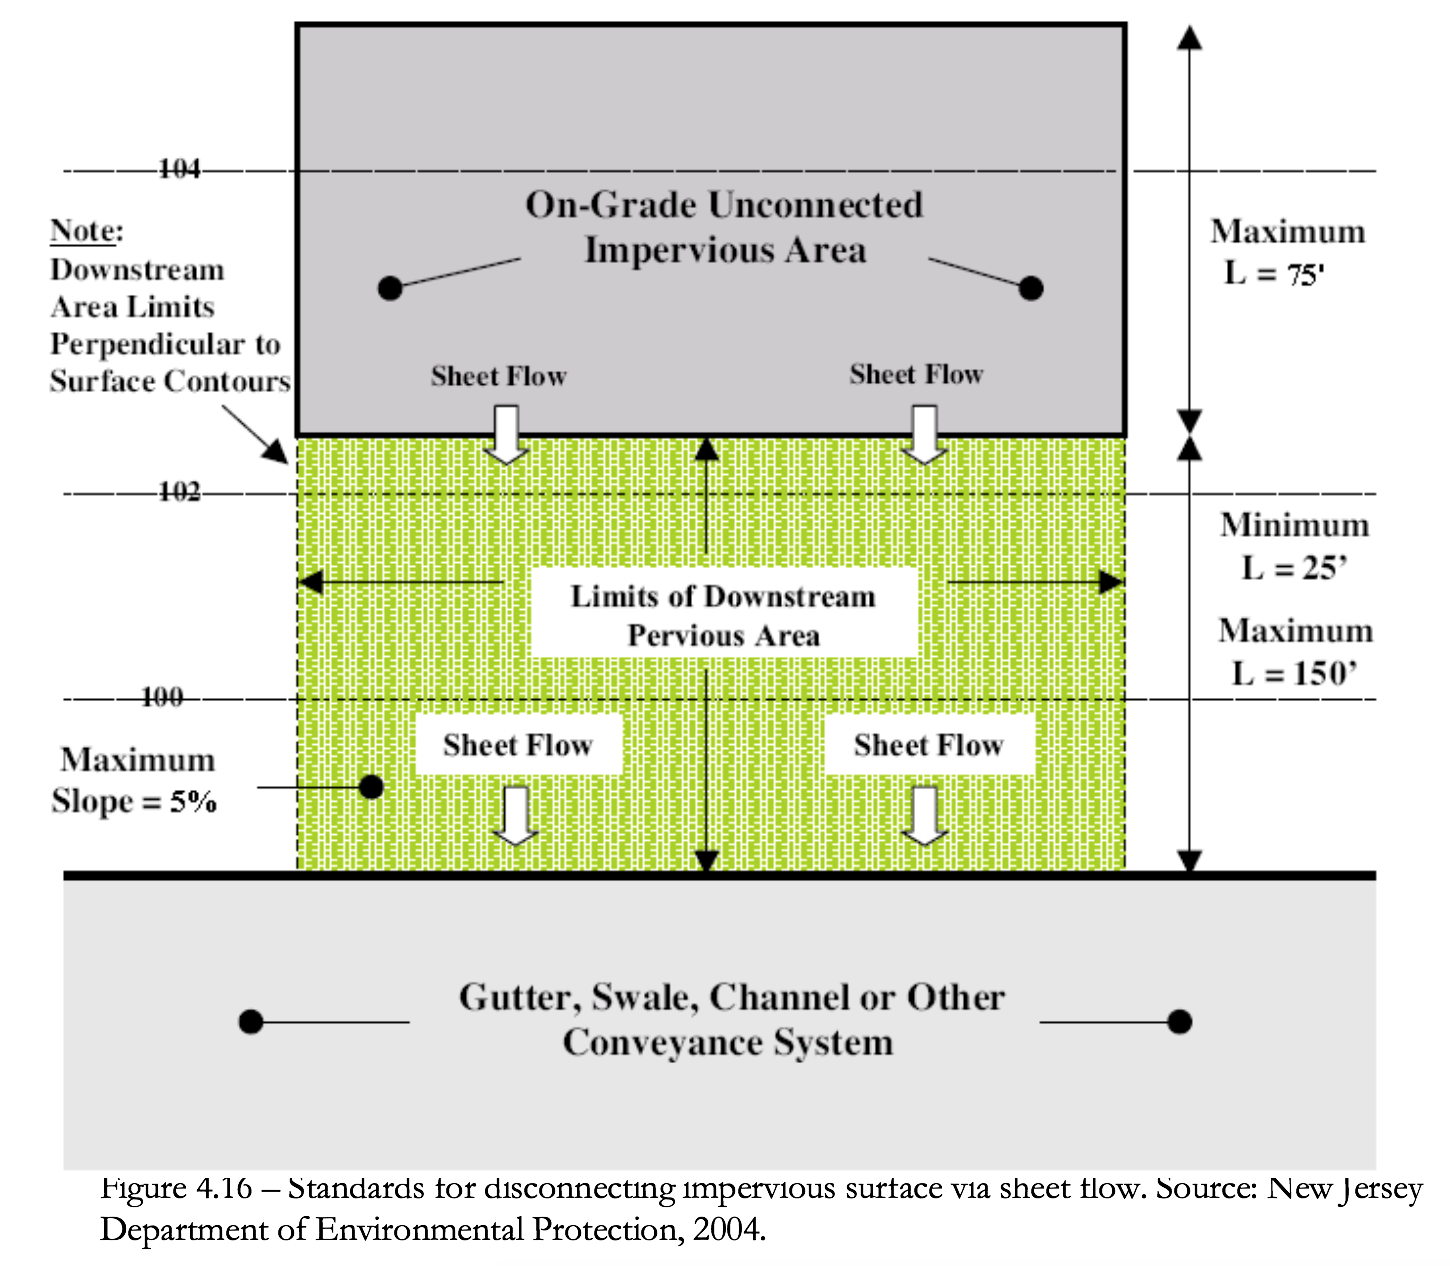 Figure 4.16 Standards for disconnecting impervious surface via sheet flow.